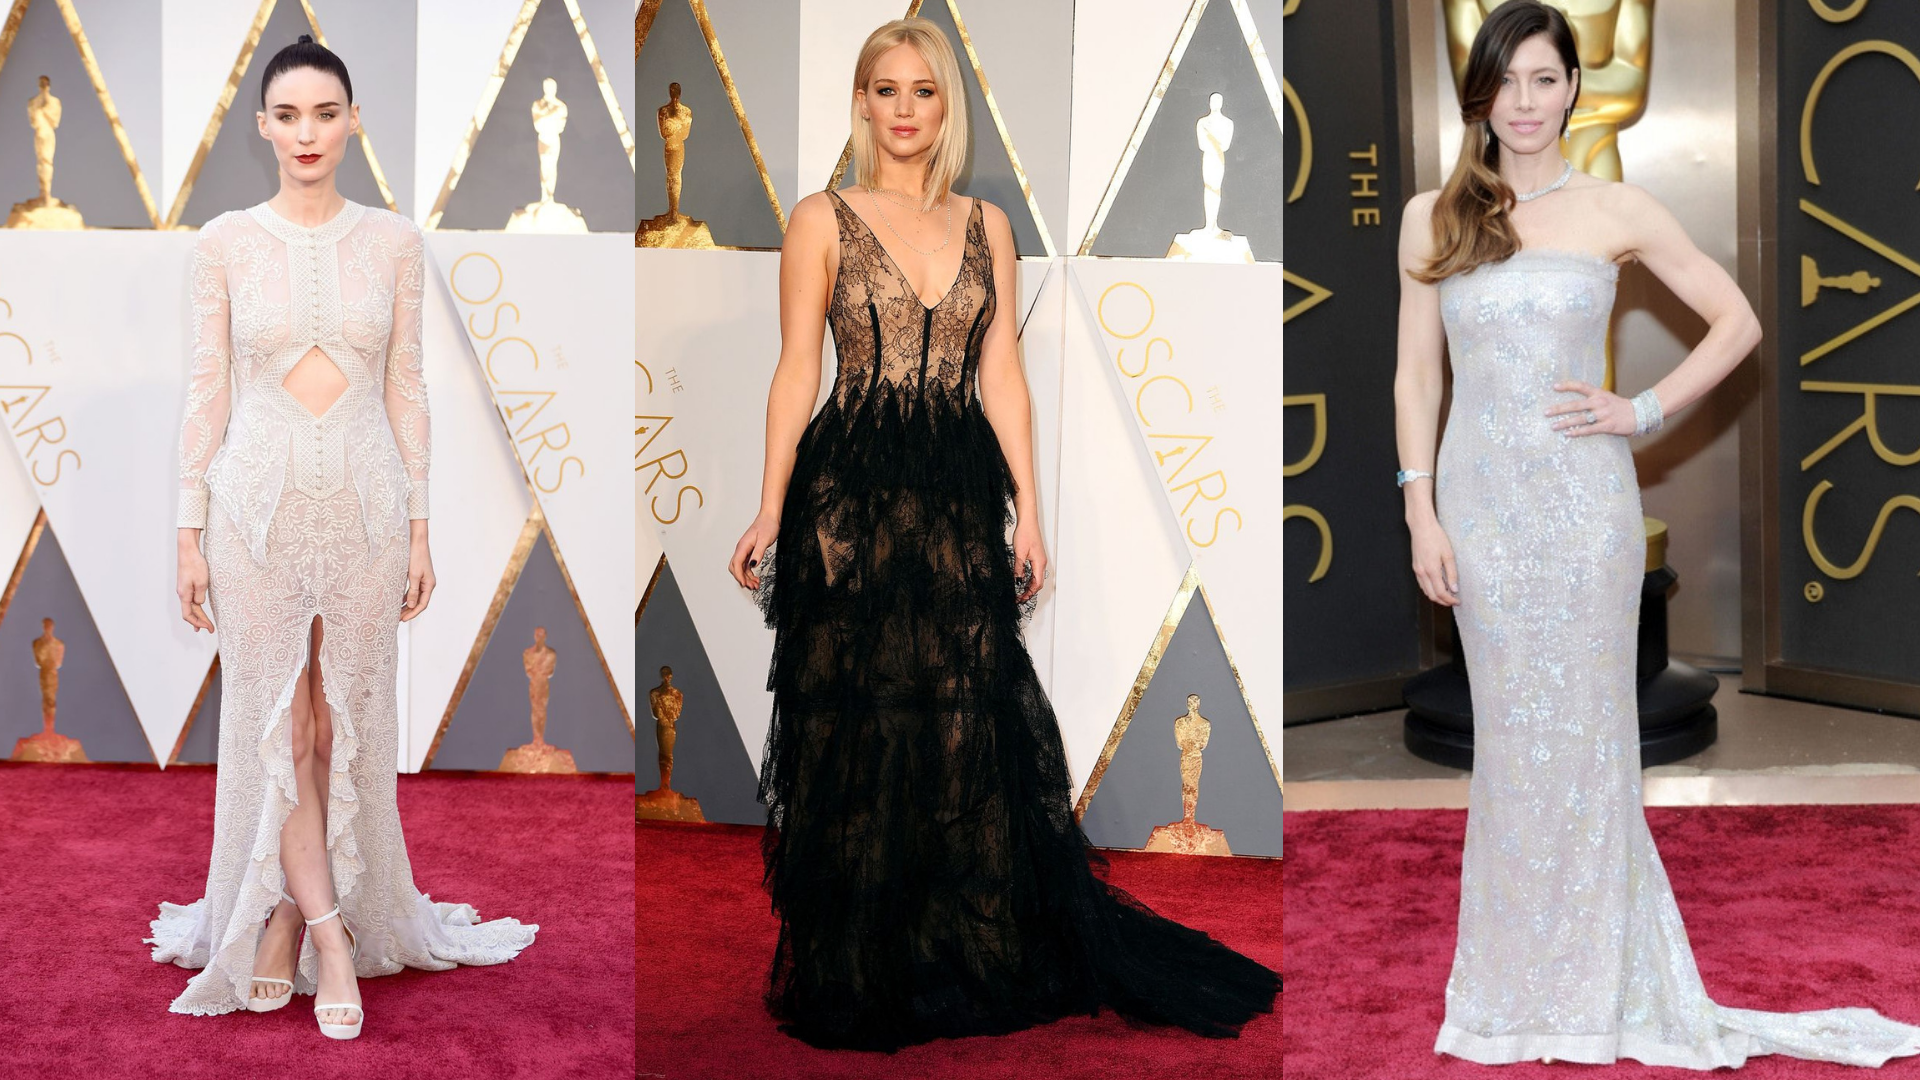 The Most Expensive Red Carpet Dresses Of All Time